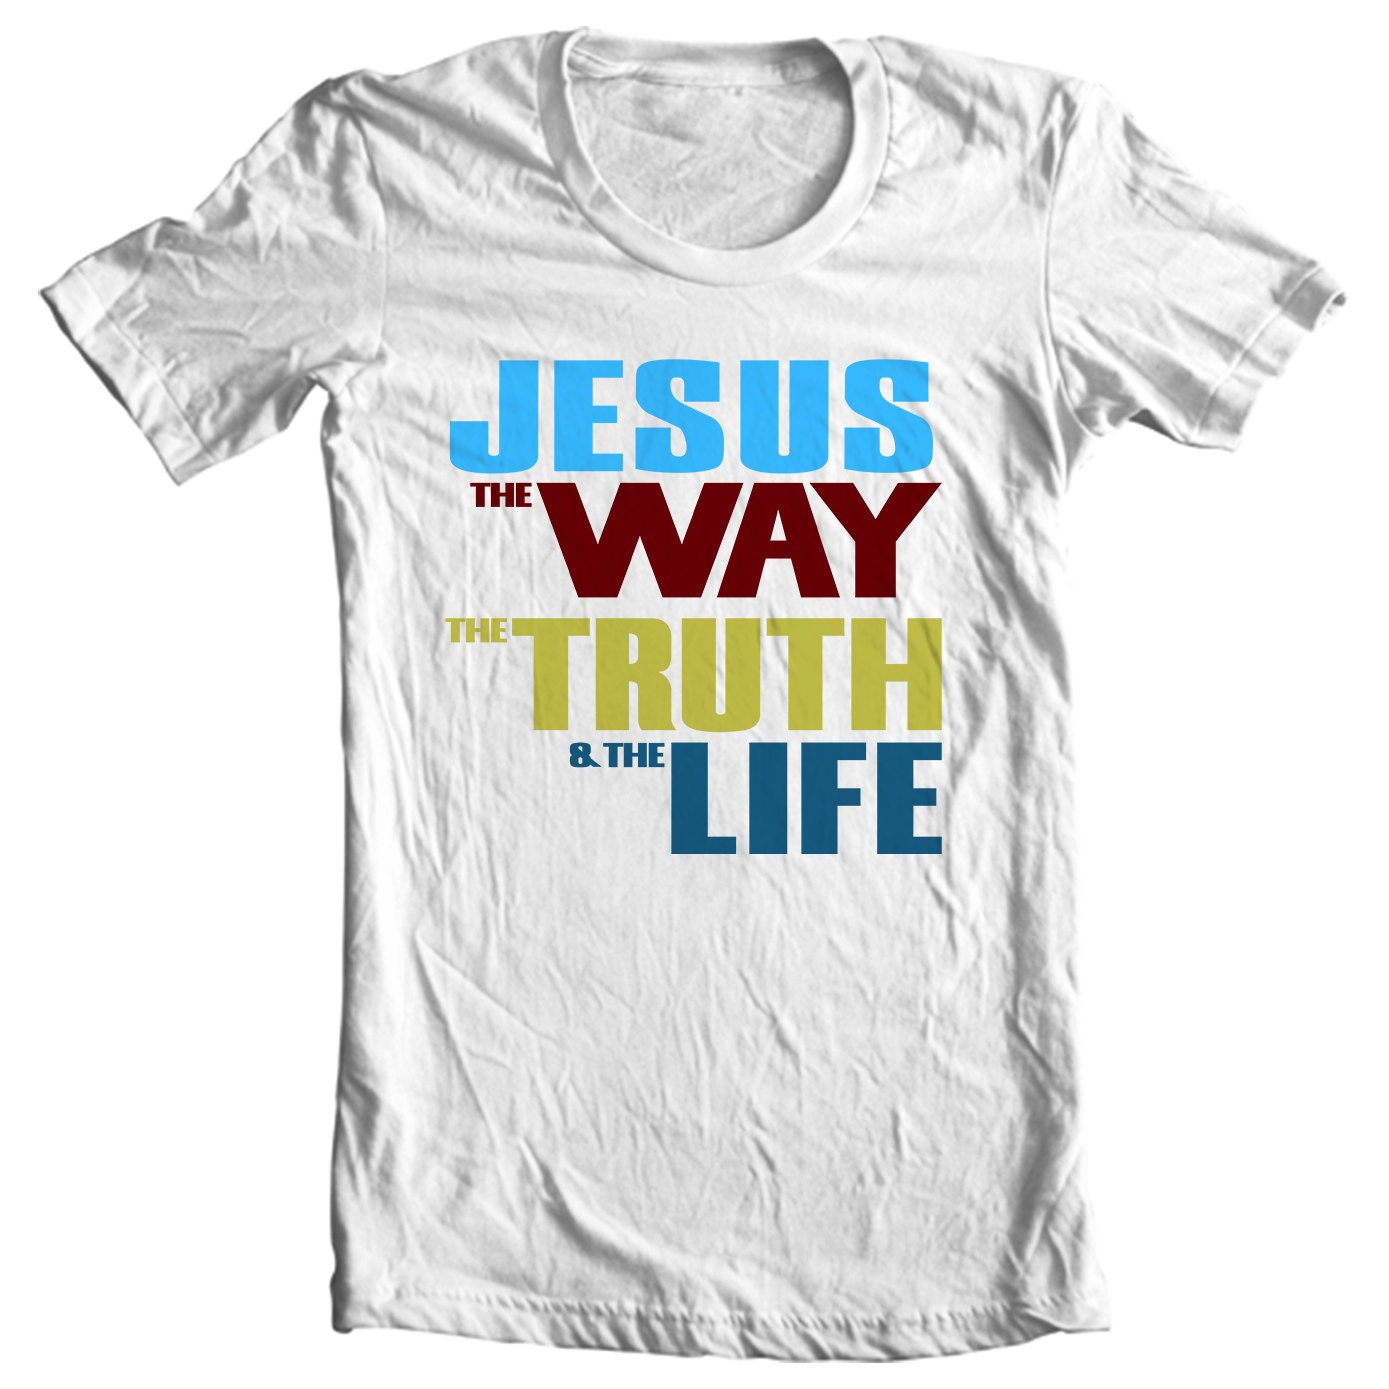 John 14:6 Jesus the Way, the Truth and the Life T-shirt Christian Clothing